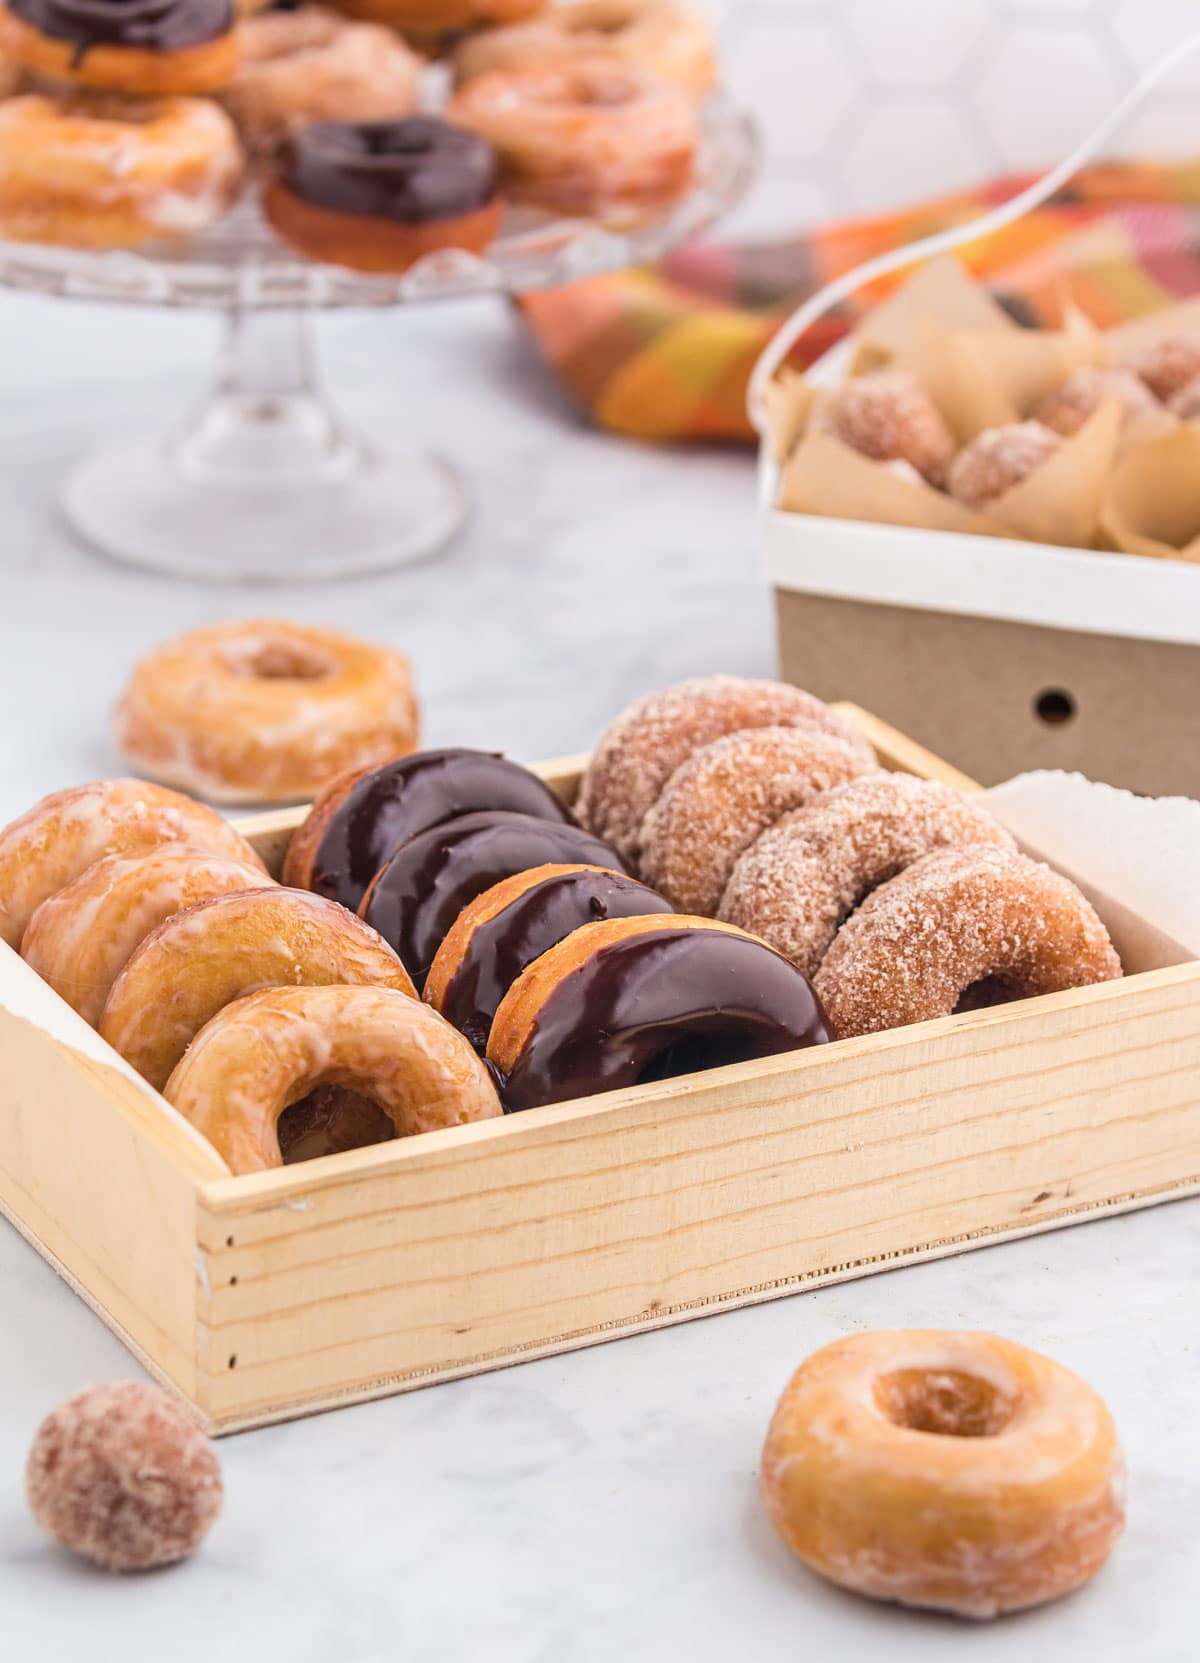 A variety of glazed donuts in a box